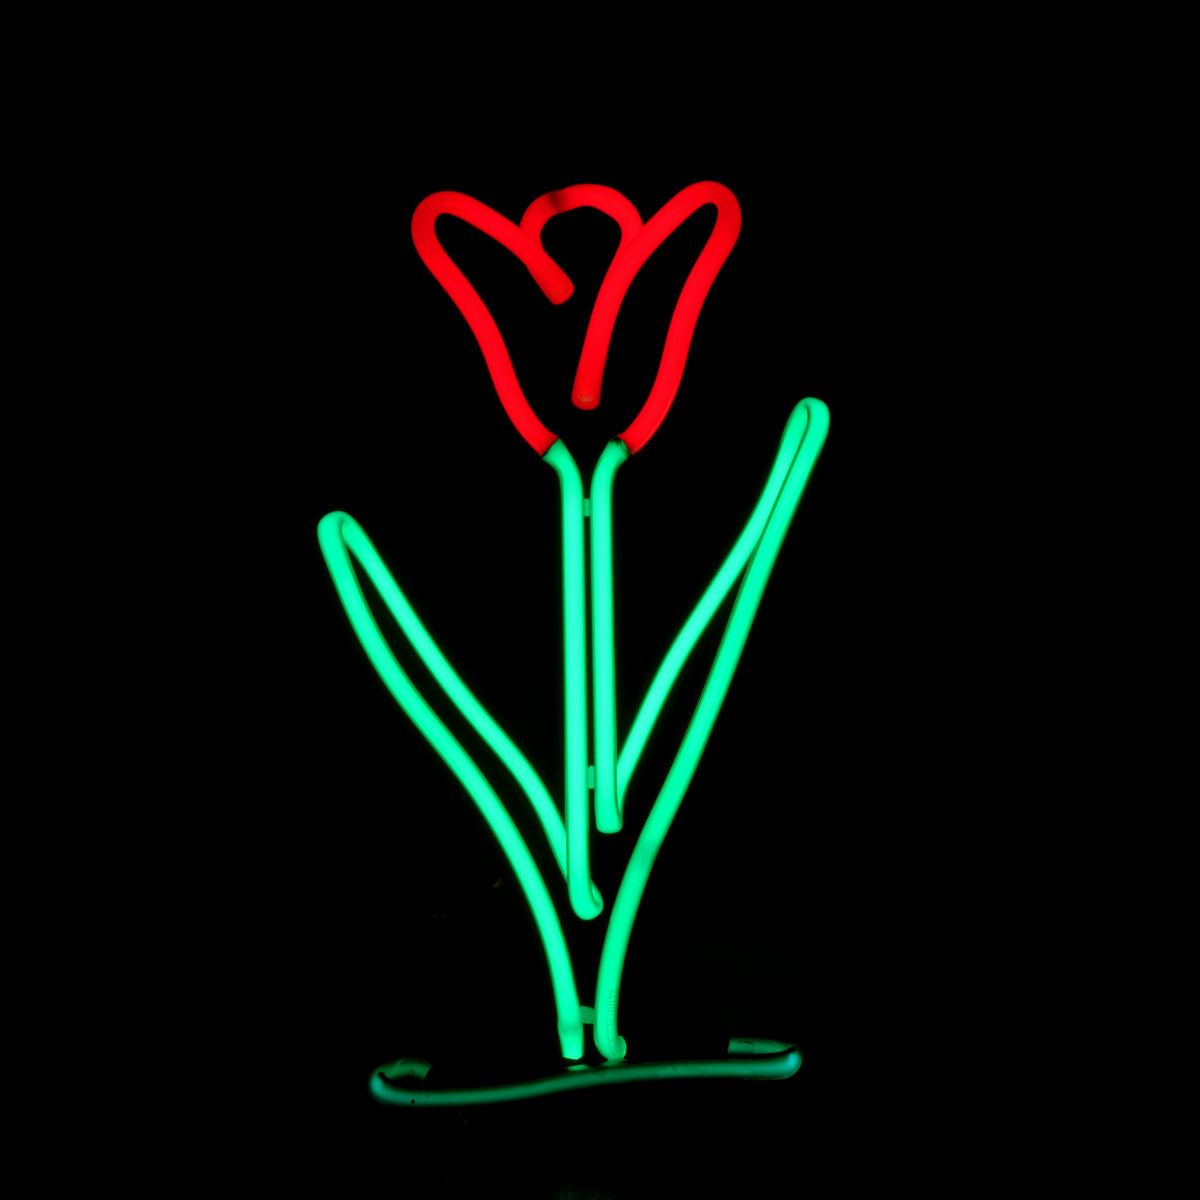 Designer Neon Floral Arrangements by Famous American Neon Light Sculptor